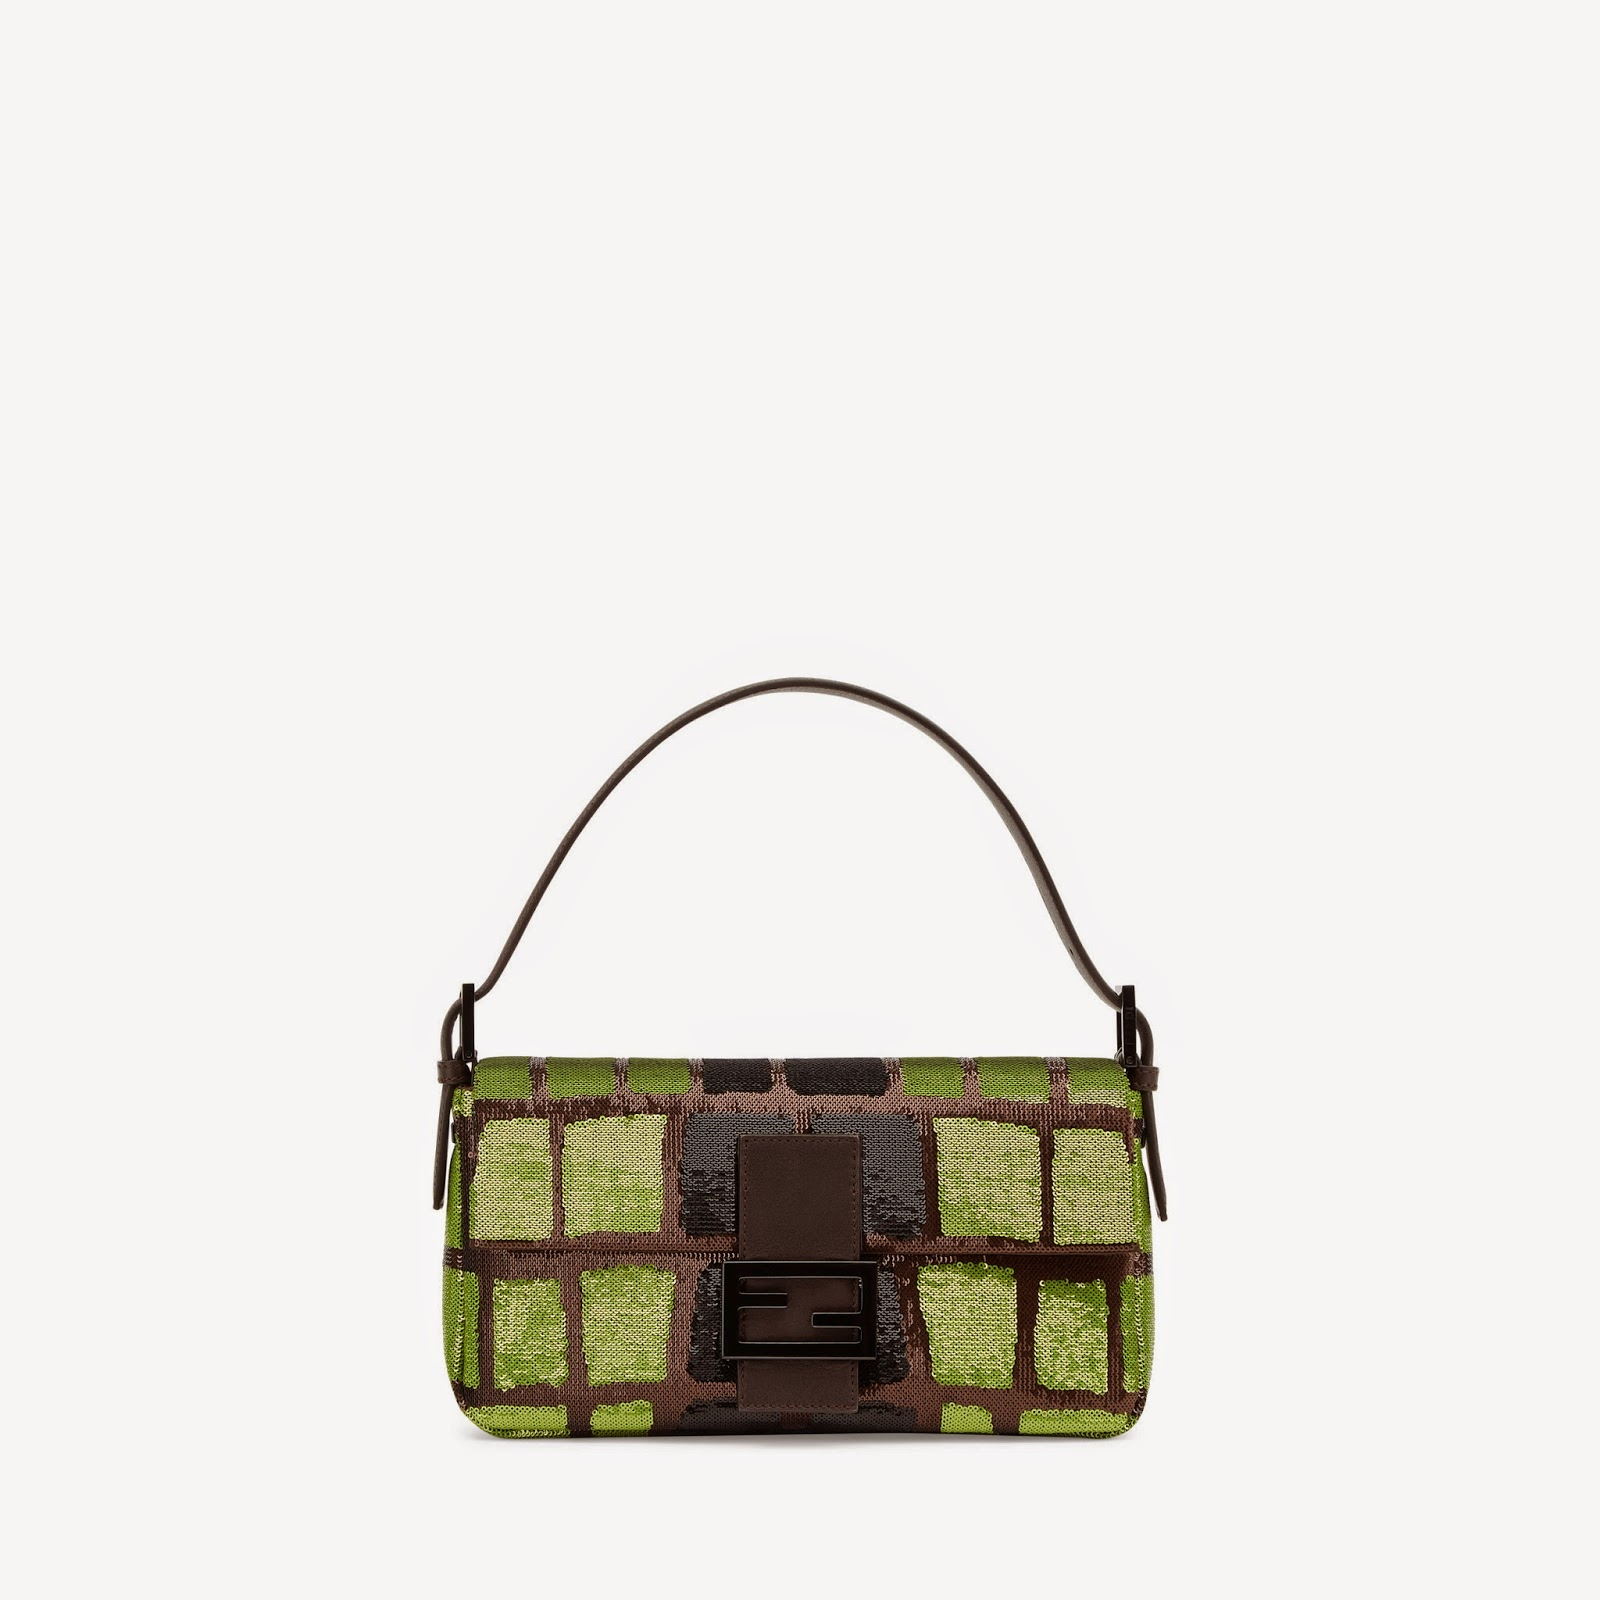 Fendi's Fall/Winter 2014 Bags